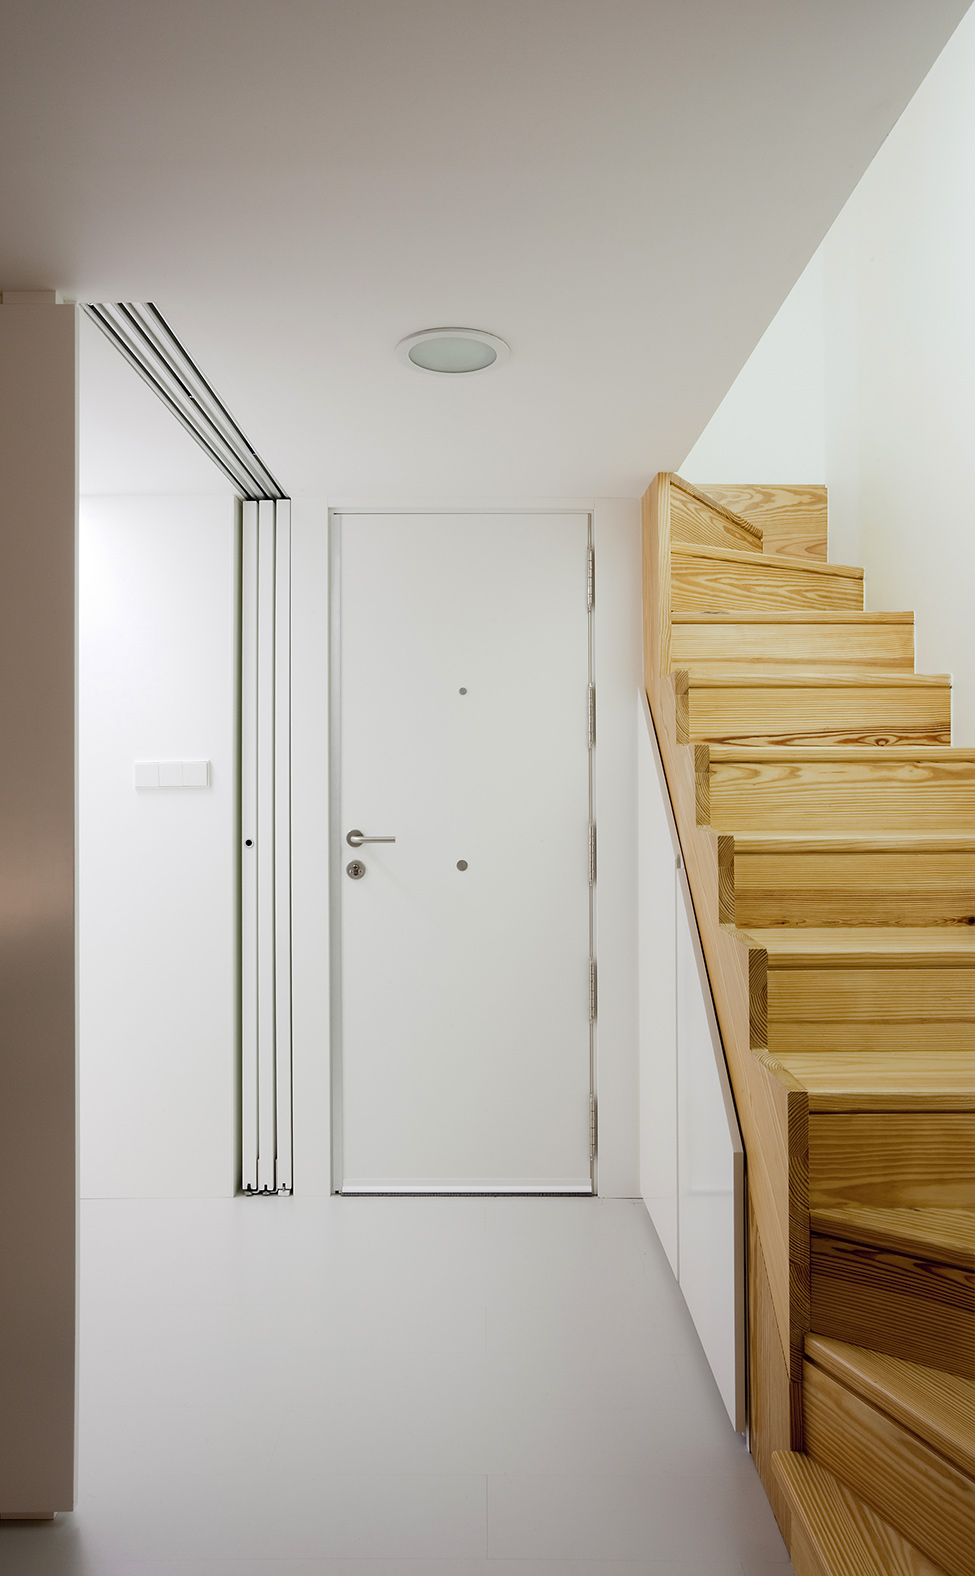 small wood staircase and amazing stark white small interior space small-bedroom-interior-design-cozy-flat-homesthetics-1